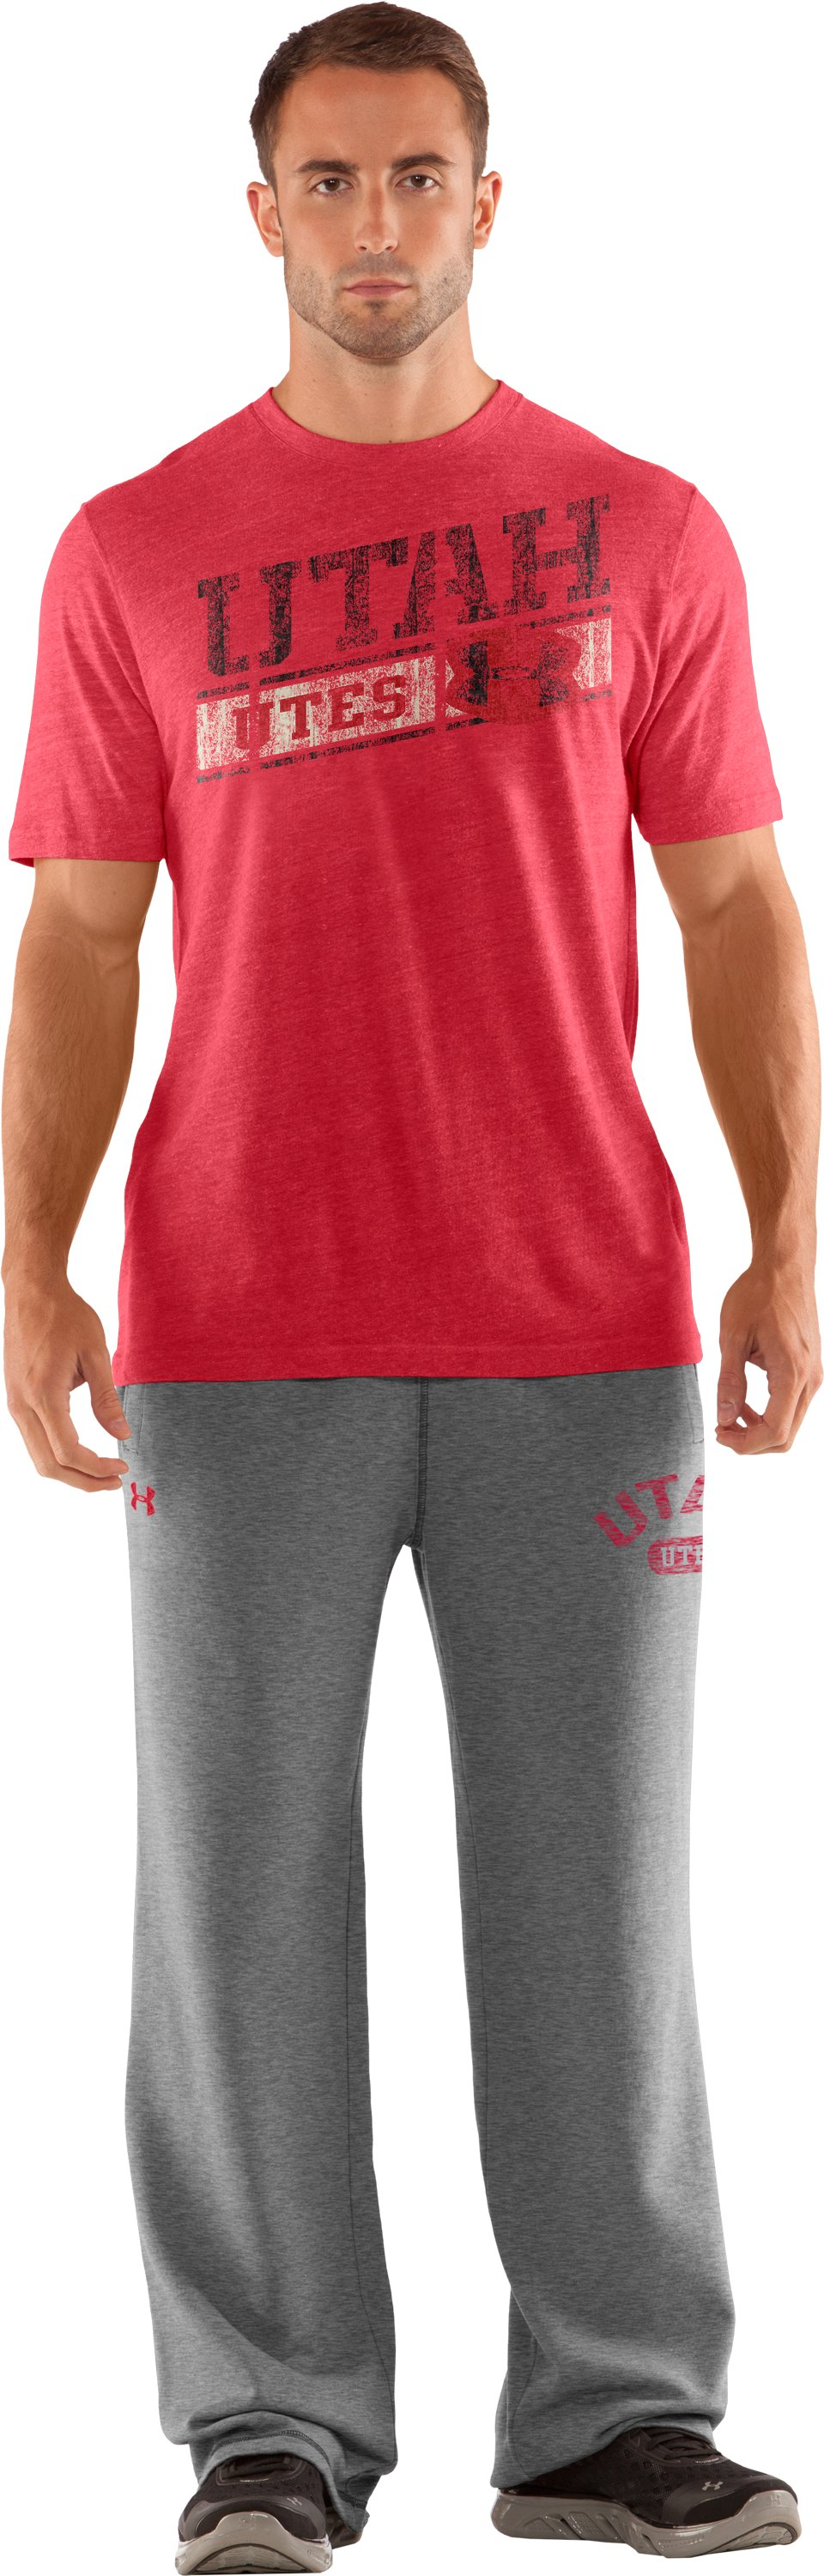 Men's Utah Under Armour® Legacy Pants, True Gray Heather, Front